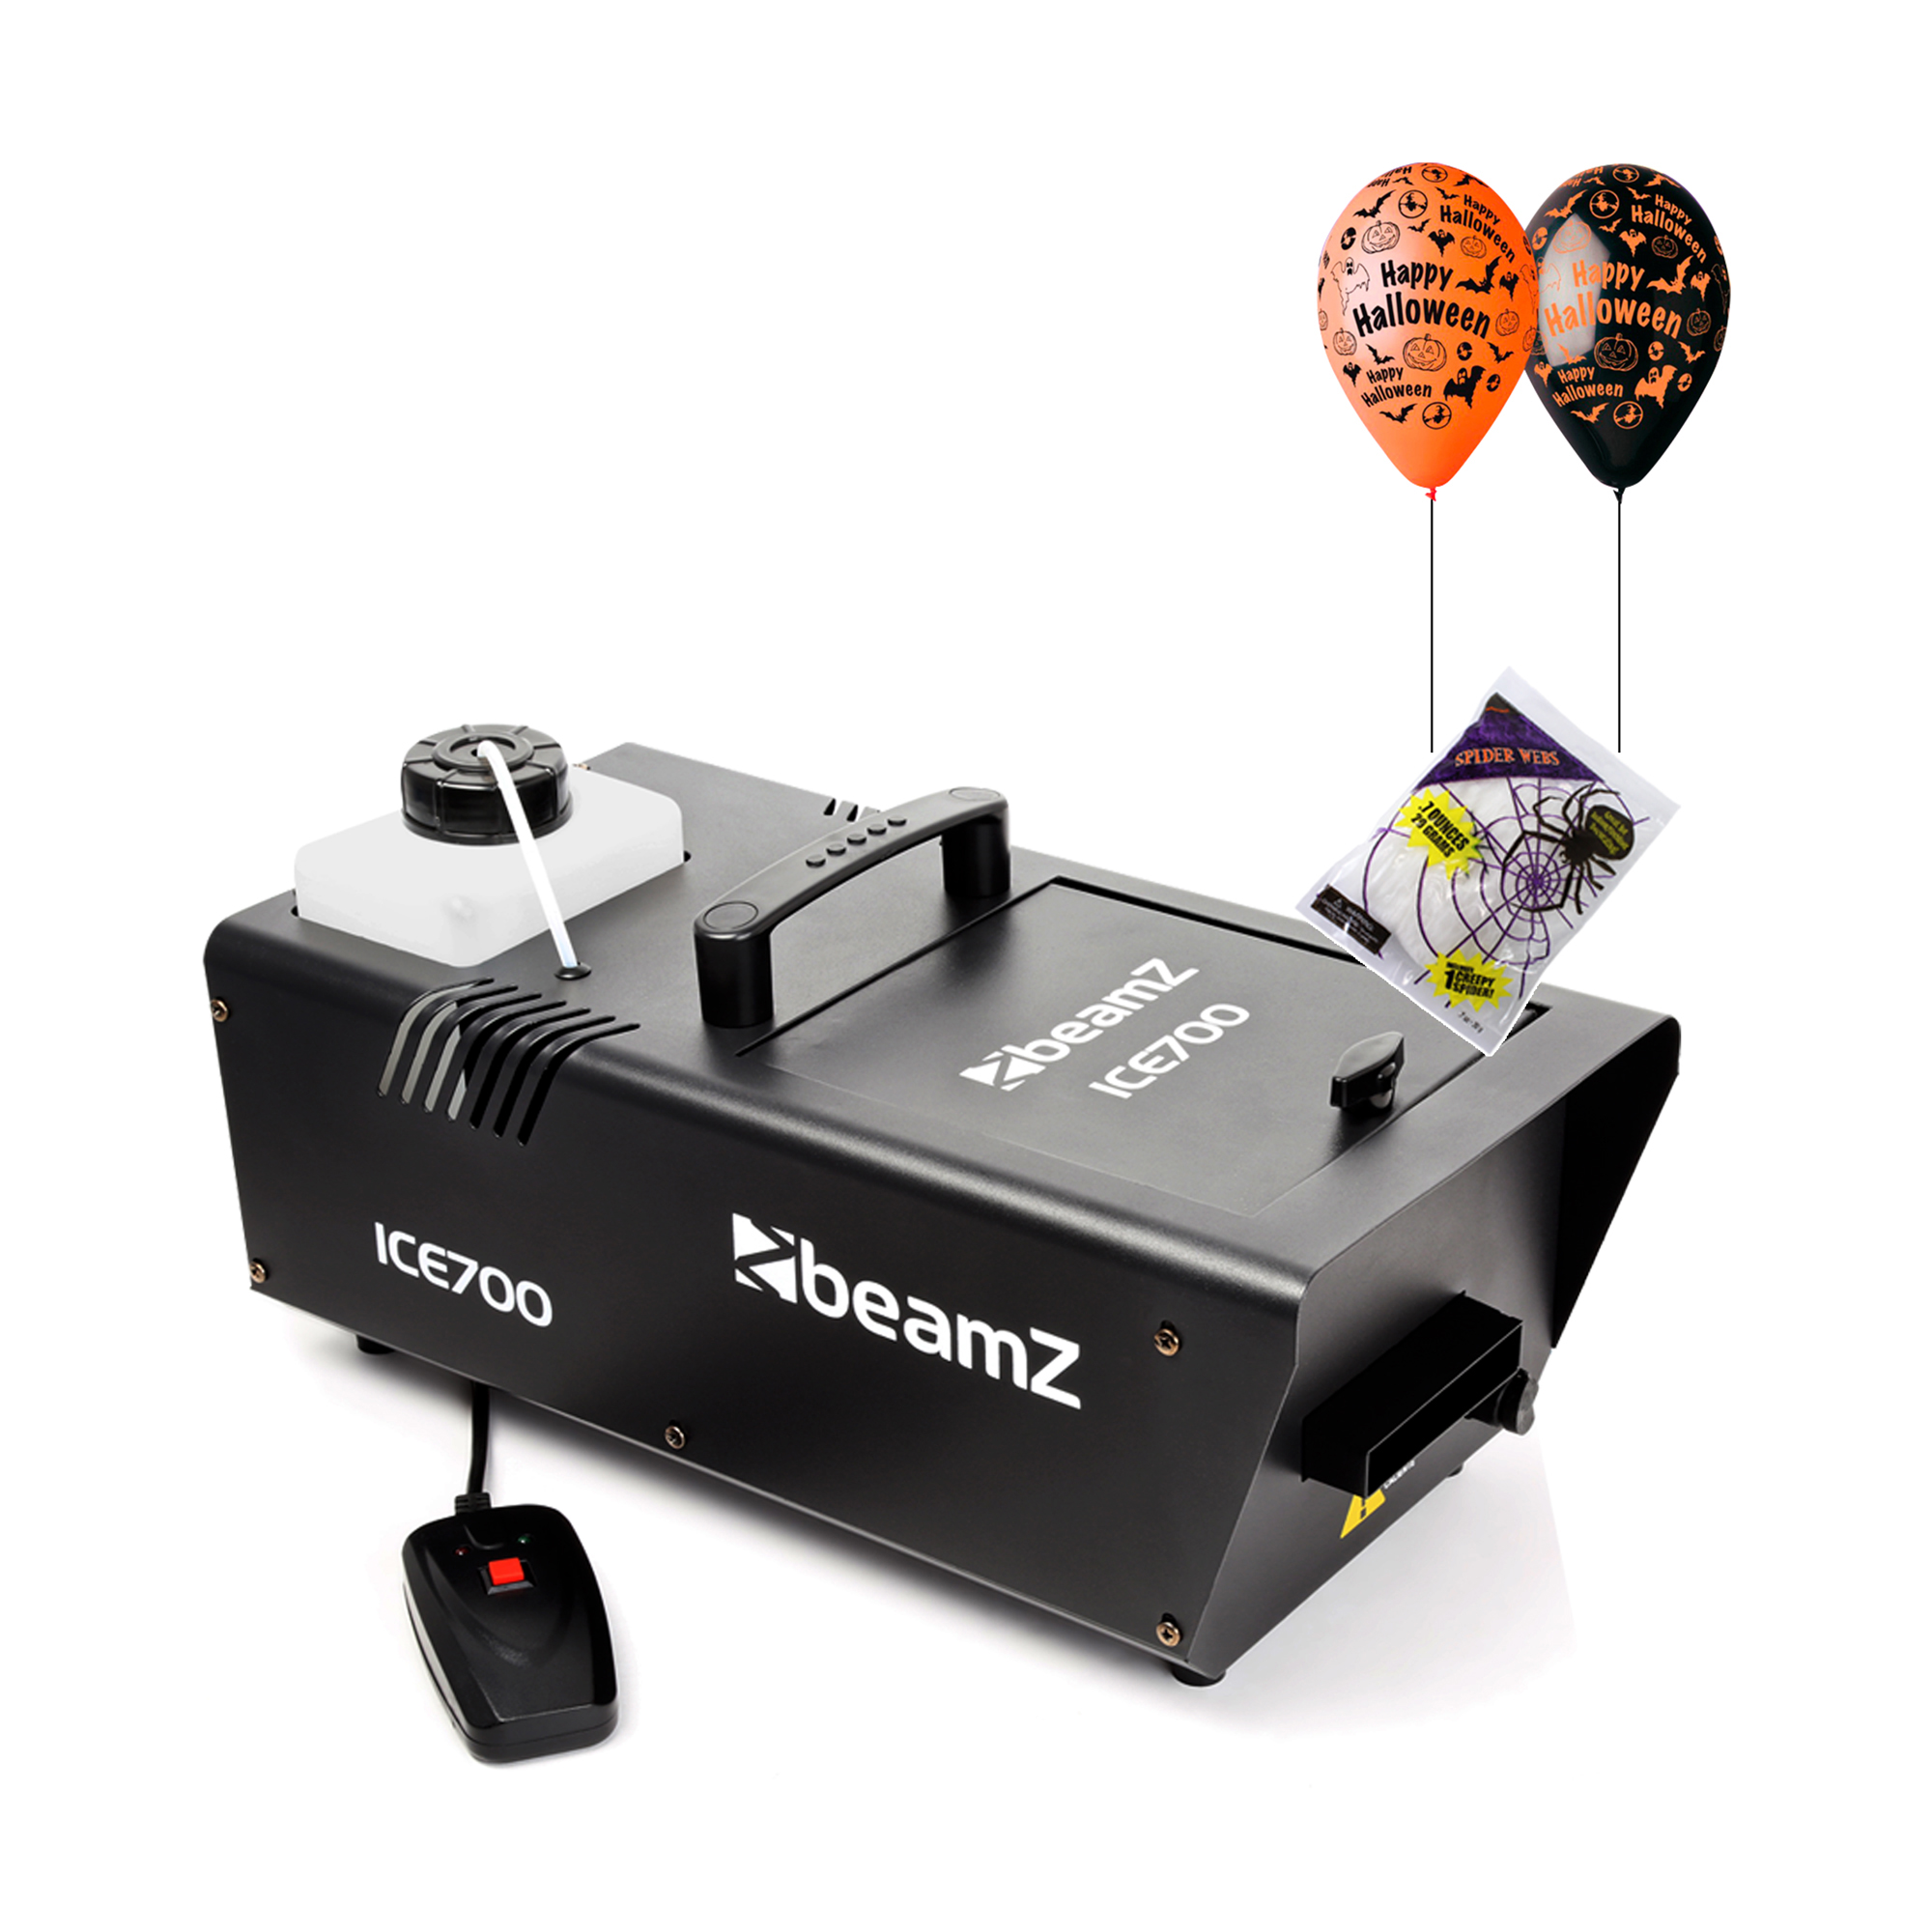 Halloween Party Package with ICE700 Low Fog Machine & Halloween Decorations